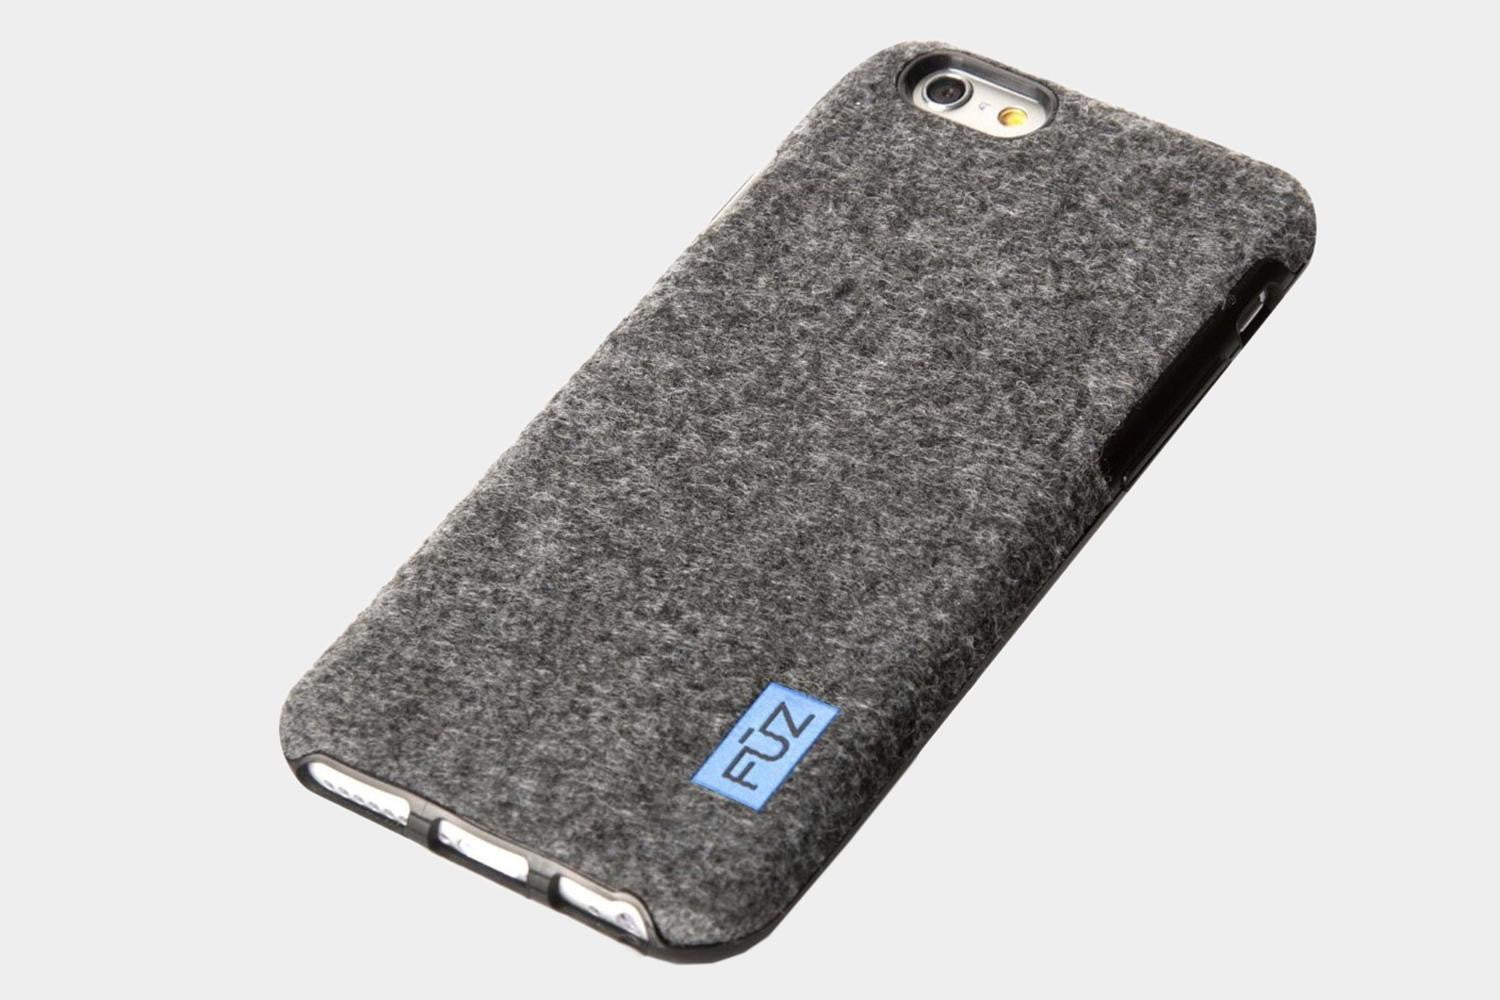 The Best Iphone 6 Cases And Covers Digital Trends Case 6s Matte Full Protective Hard For Golden Fuzs Distinct Design Is Perfect Making A Statement Though Minimal Less Than Others On This List